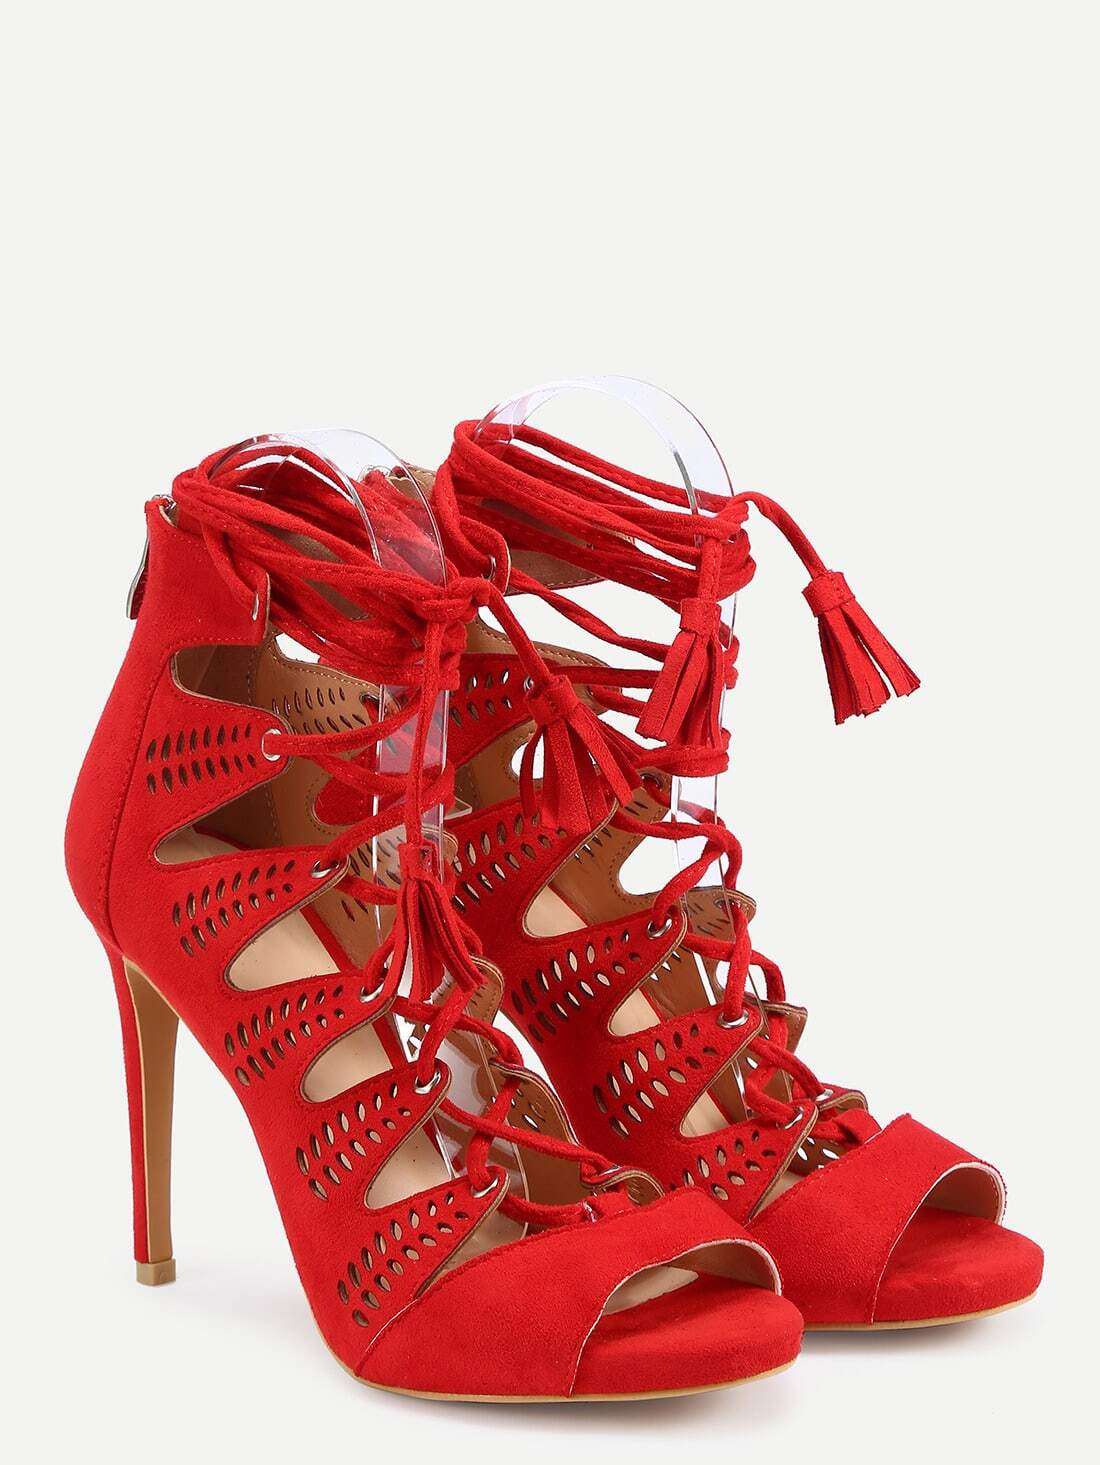 Faux Suede Lace-Up Heels - Red -SheIn(Sheinside)